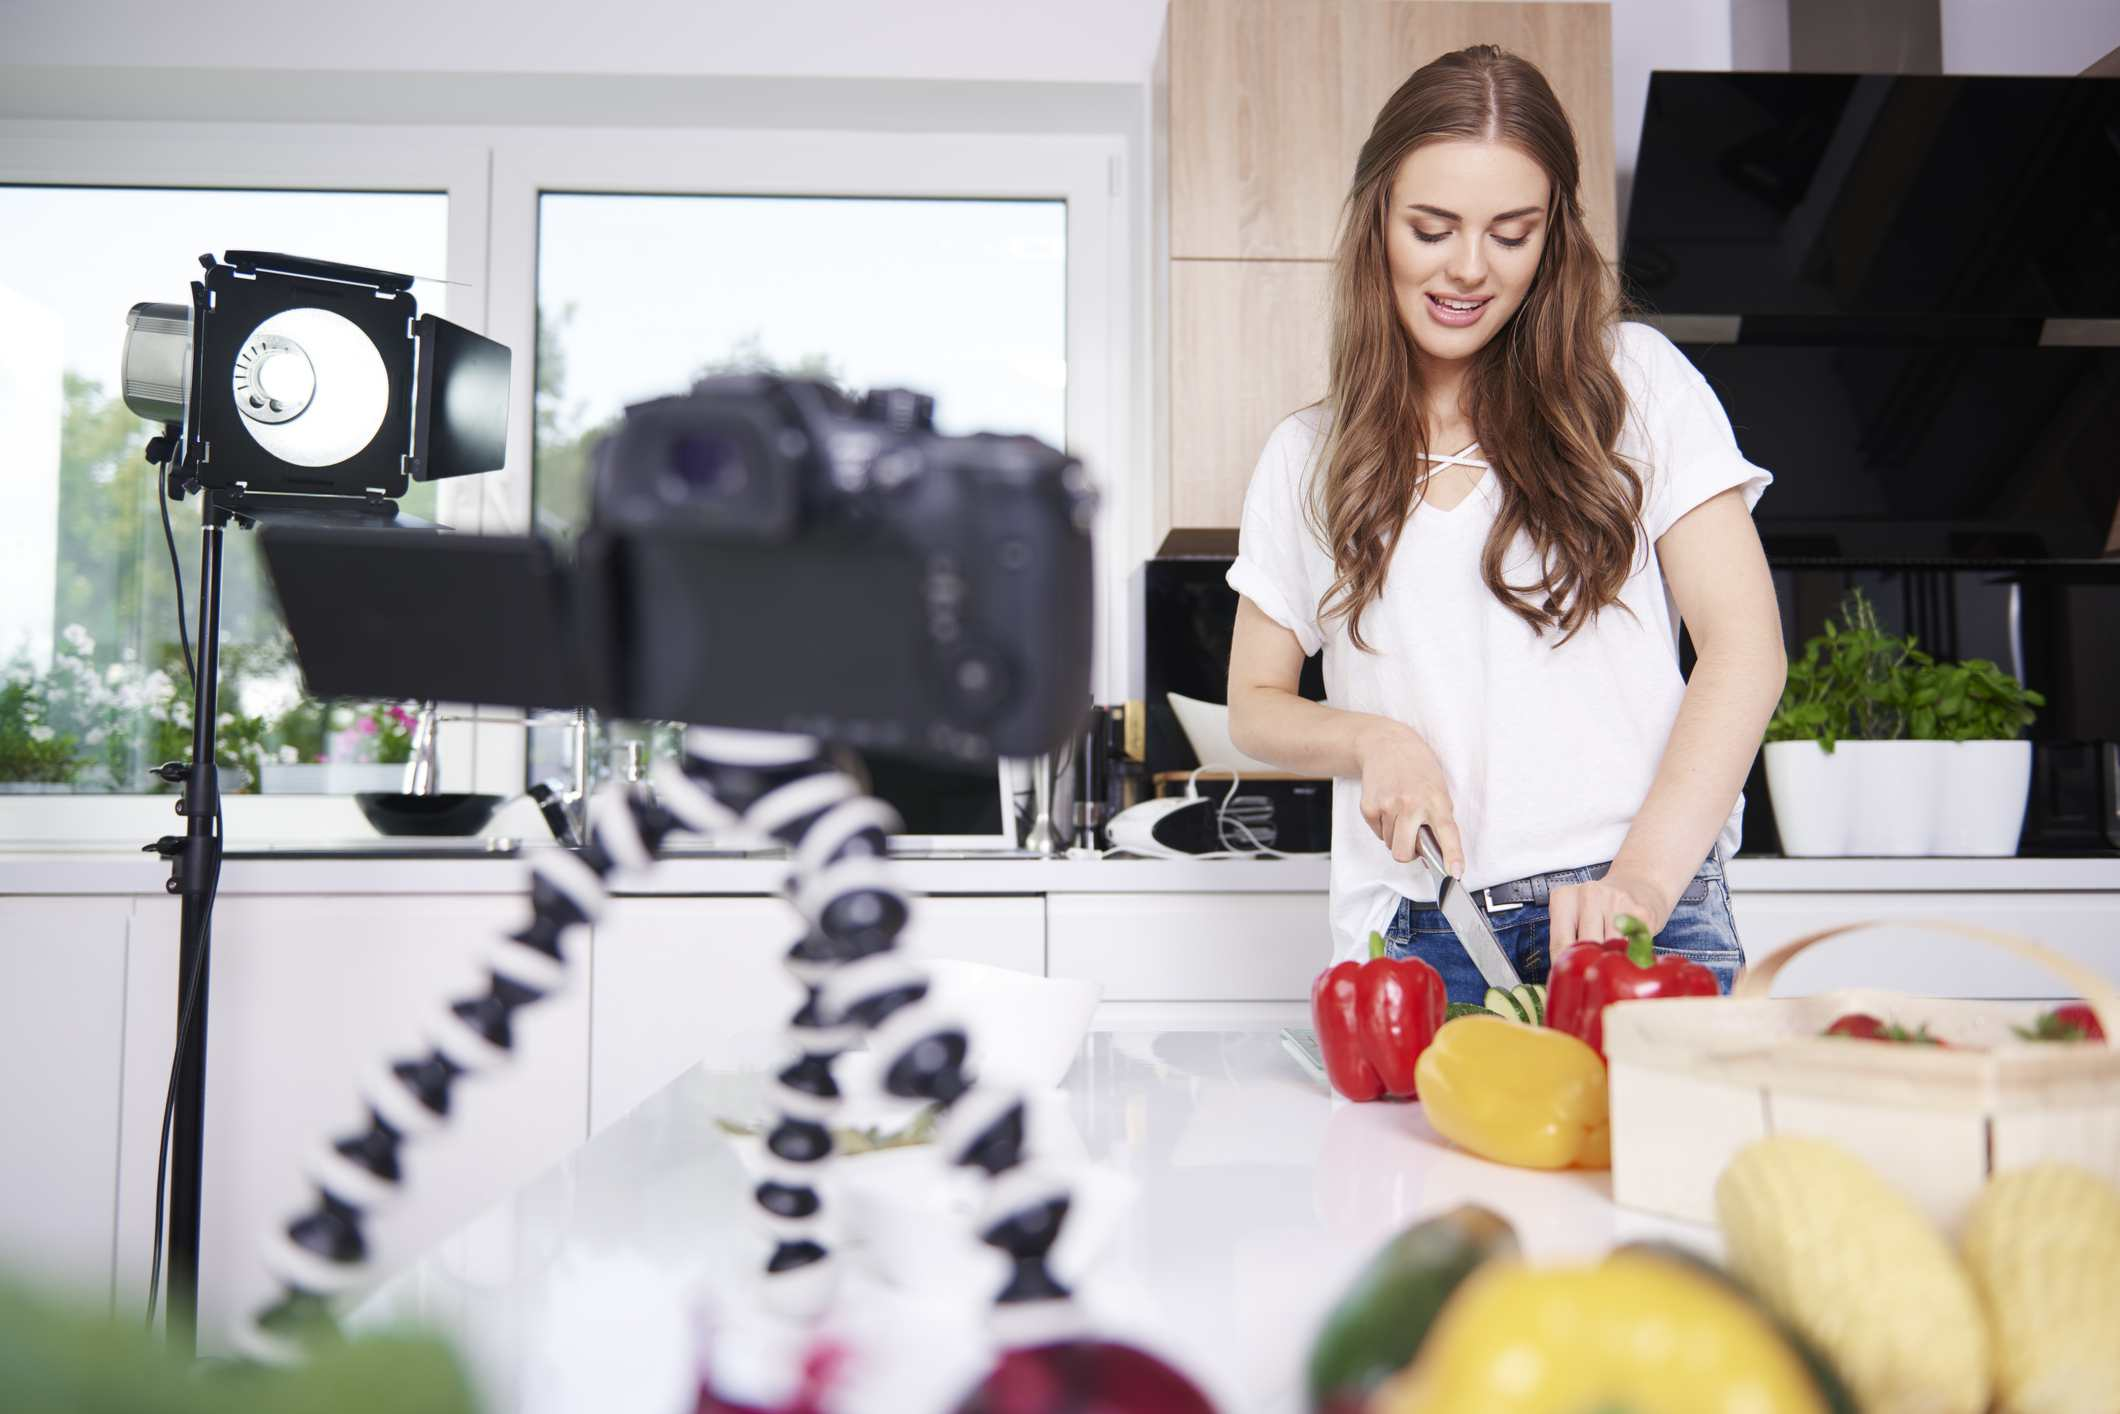 A woman recording a video for YouTube as she cooks a meal in her kitchen.